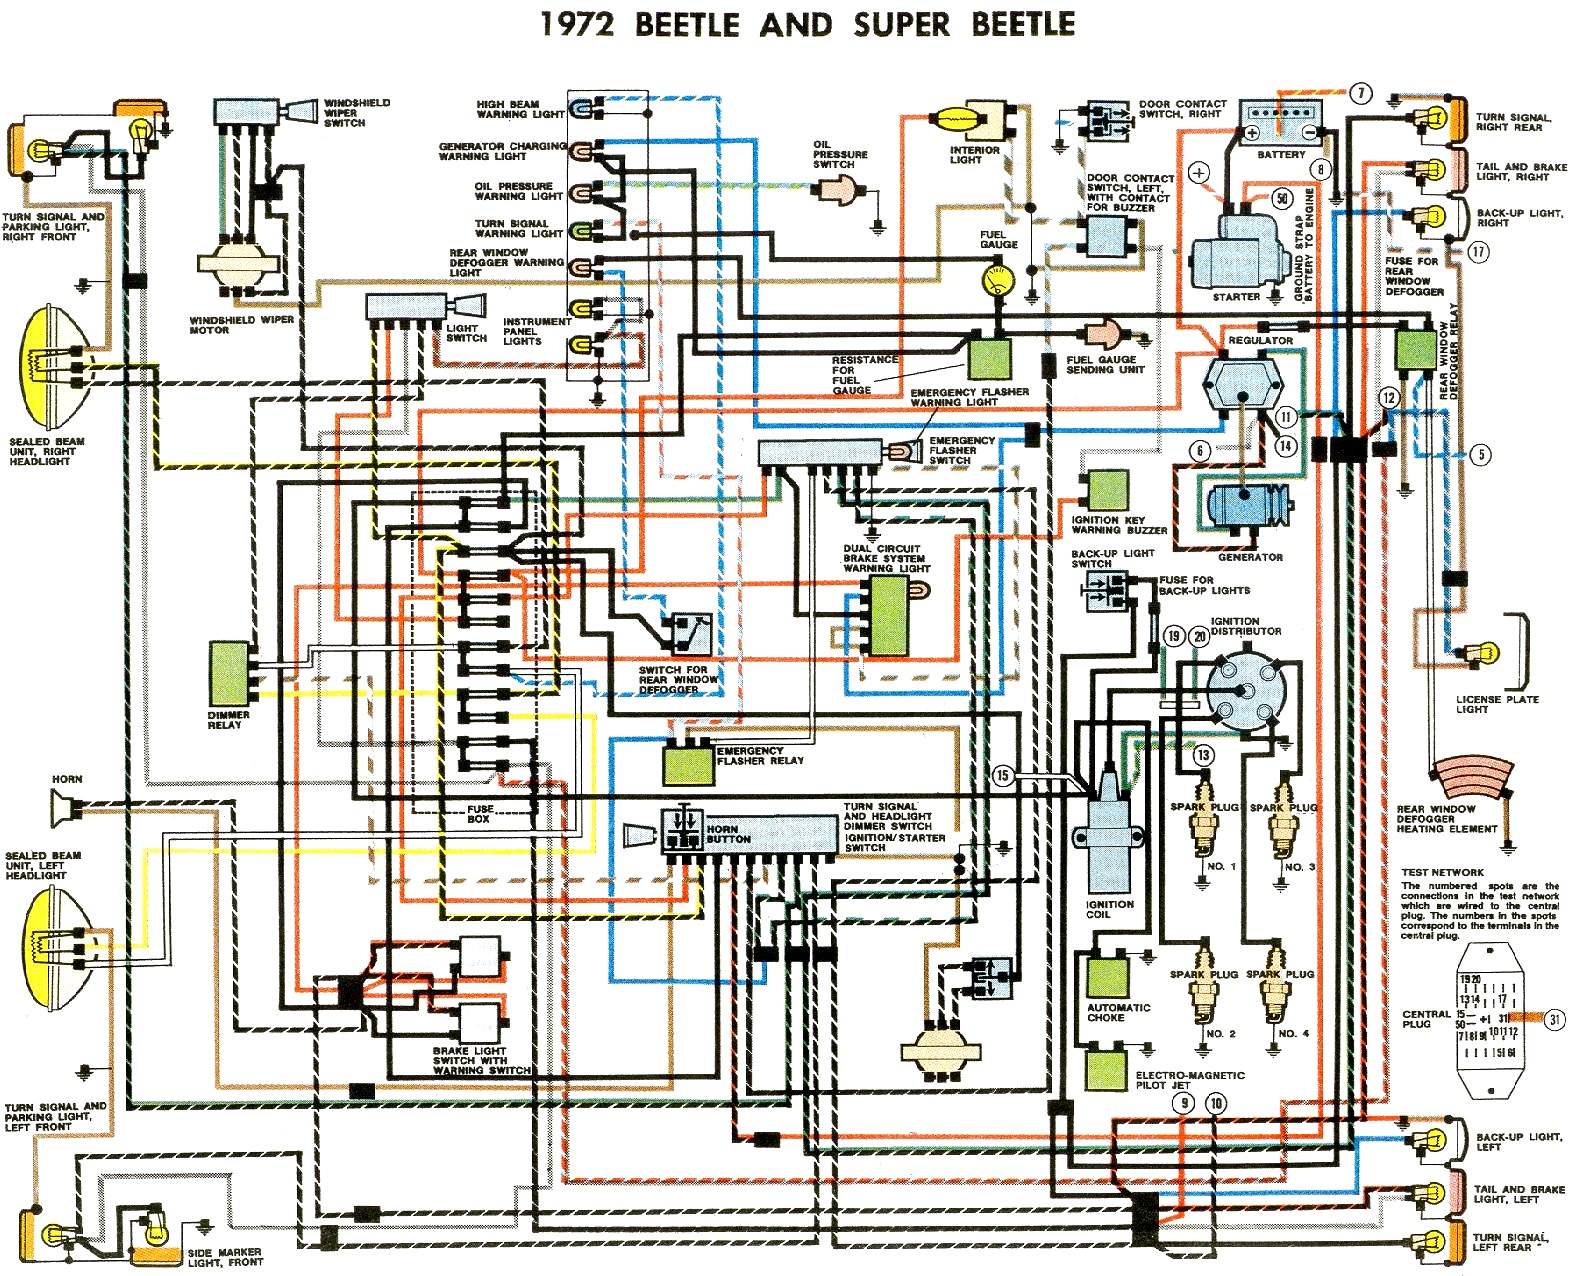 72 vw engine diagram wiring diagram basic 72 vw engine diagram wiring diagram centrewiring diagram besides vw beetle engine diagram on 1972 vw